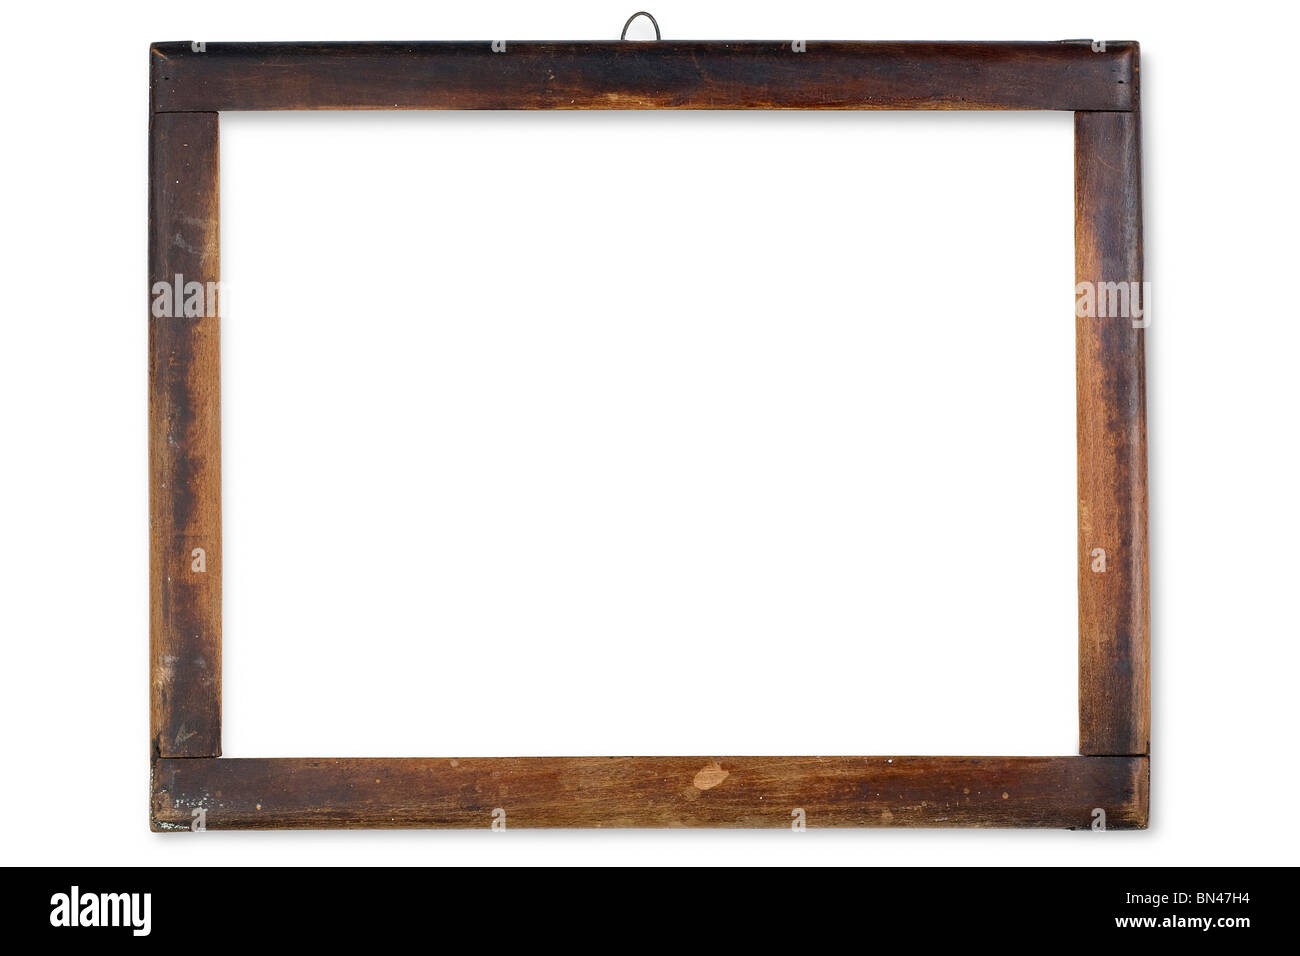 an old wooden frame on white - Stock Image